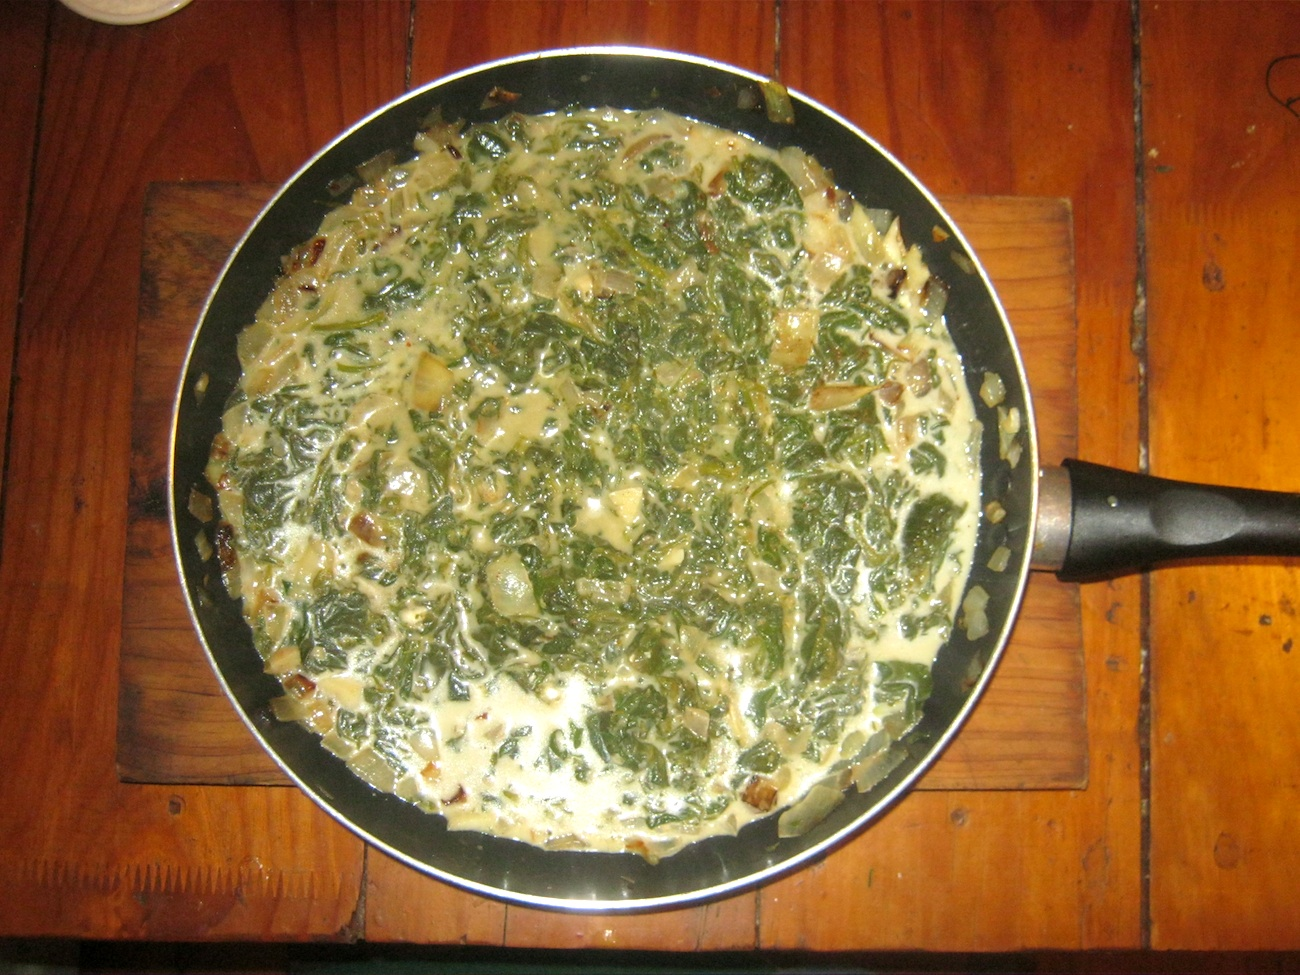 Rahmspinat / Cream spinach in a pan